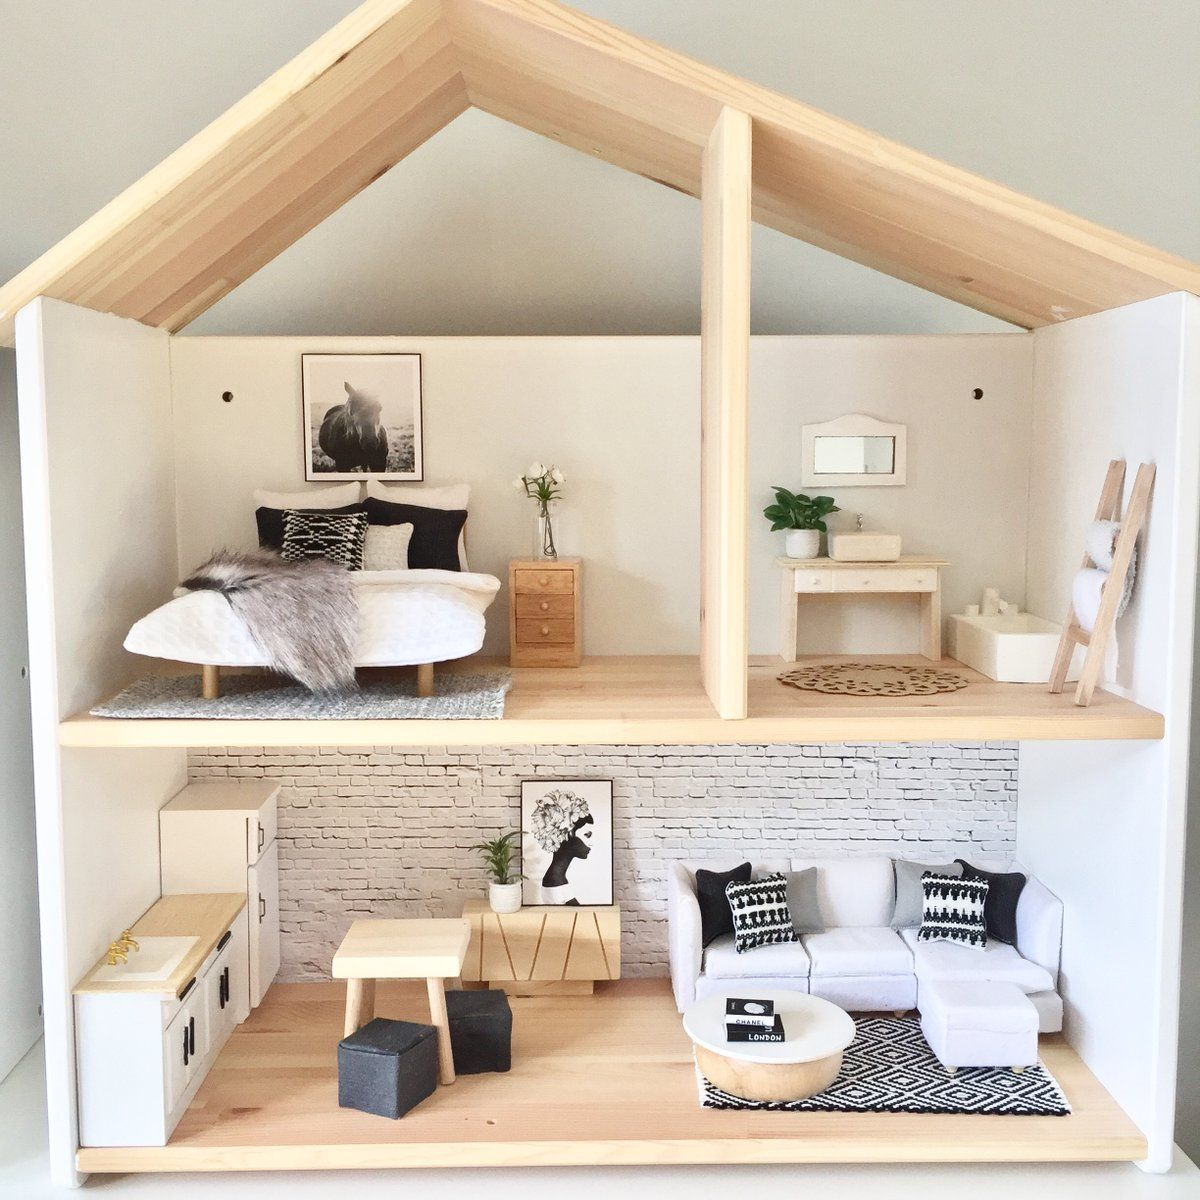 The Fully Furnished Boho Dollhouse Is A Perfect Size To Fit On A Dresser Or Small Table Exact Measu Doll House Plans Modern Dollhouse Furniture Ikea Dollhouse